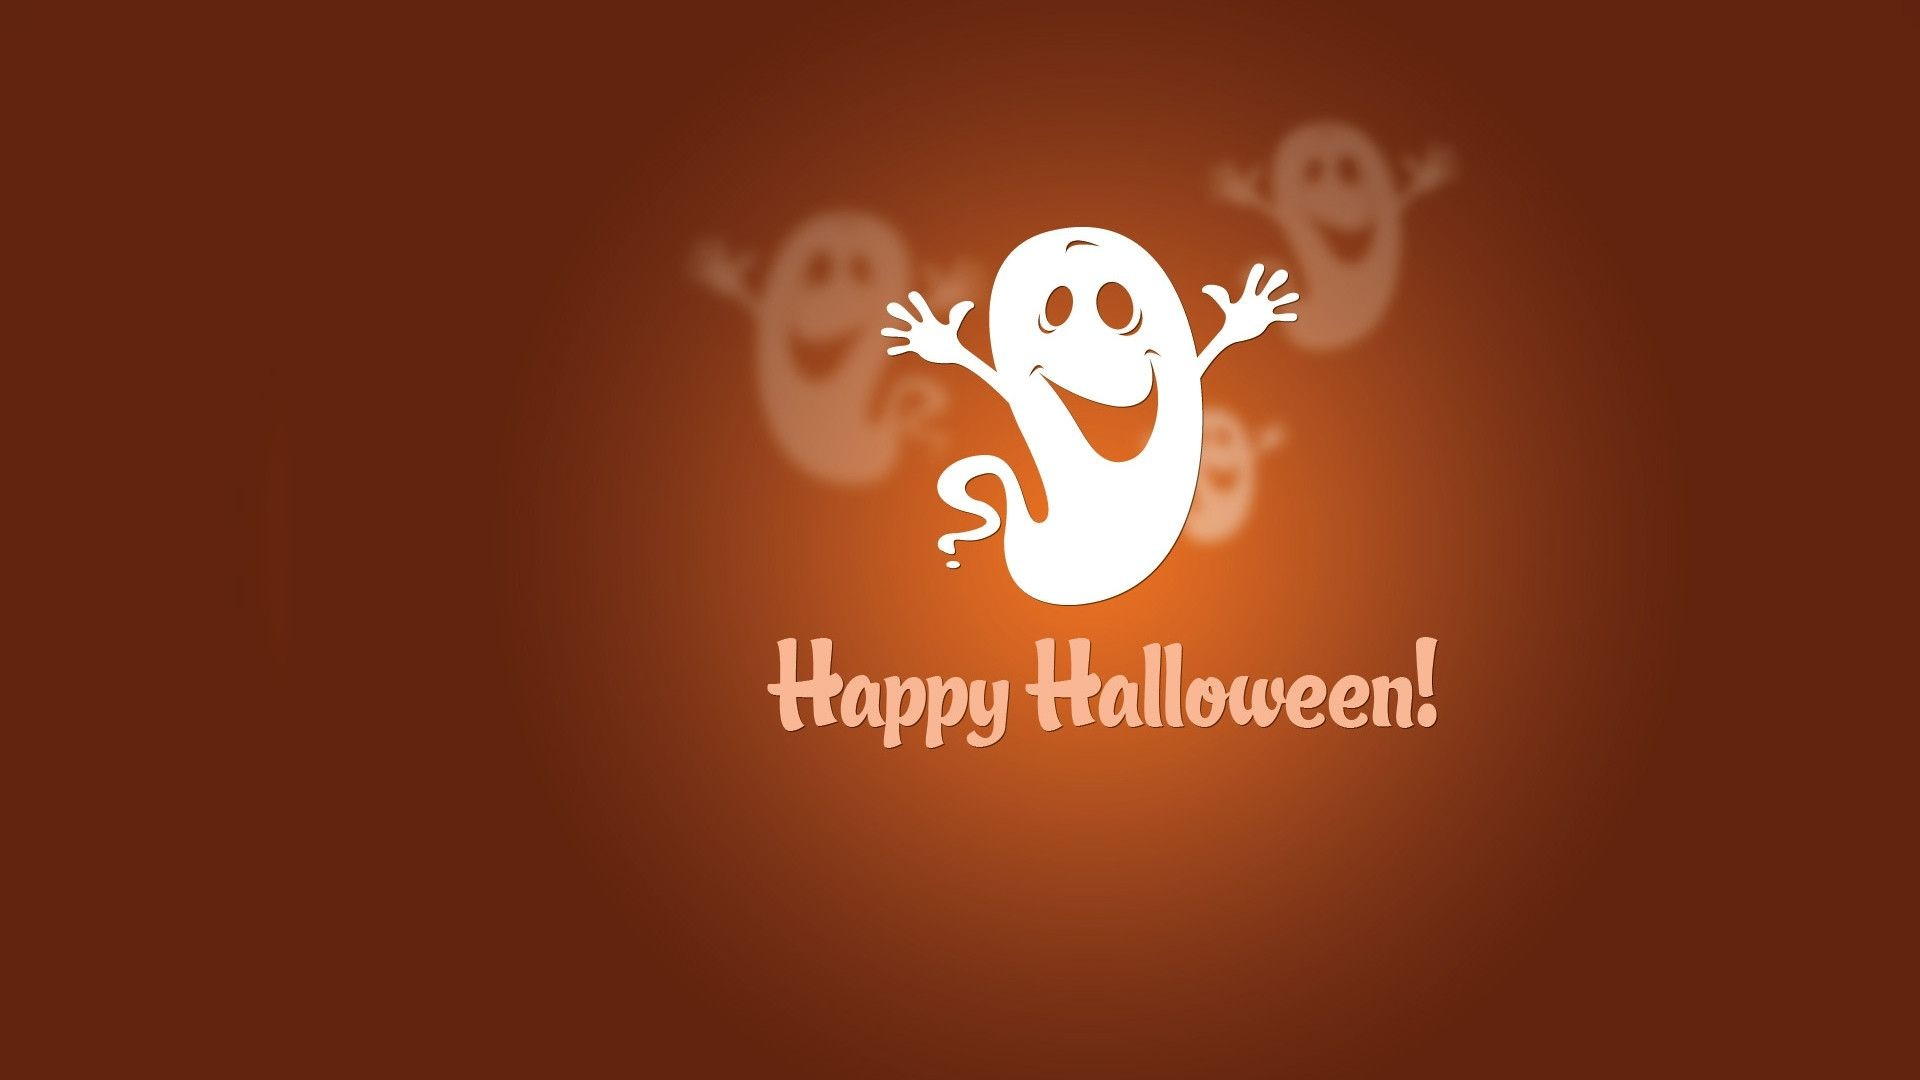 Happy Halloween Backgrounds Tumblr